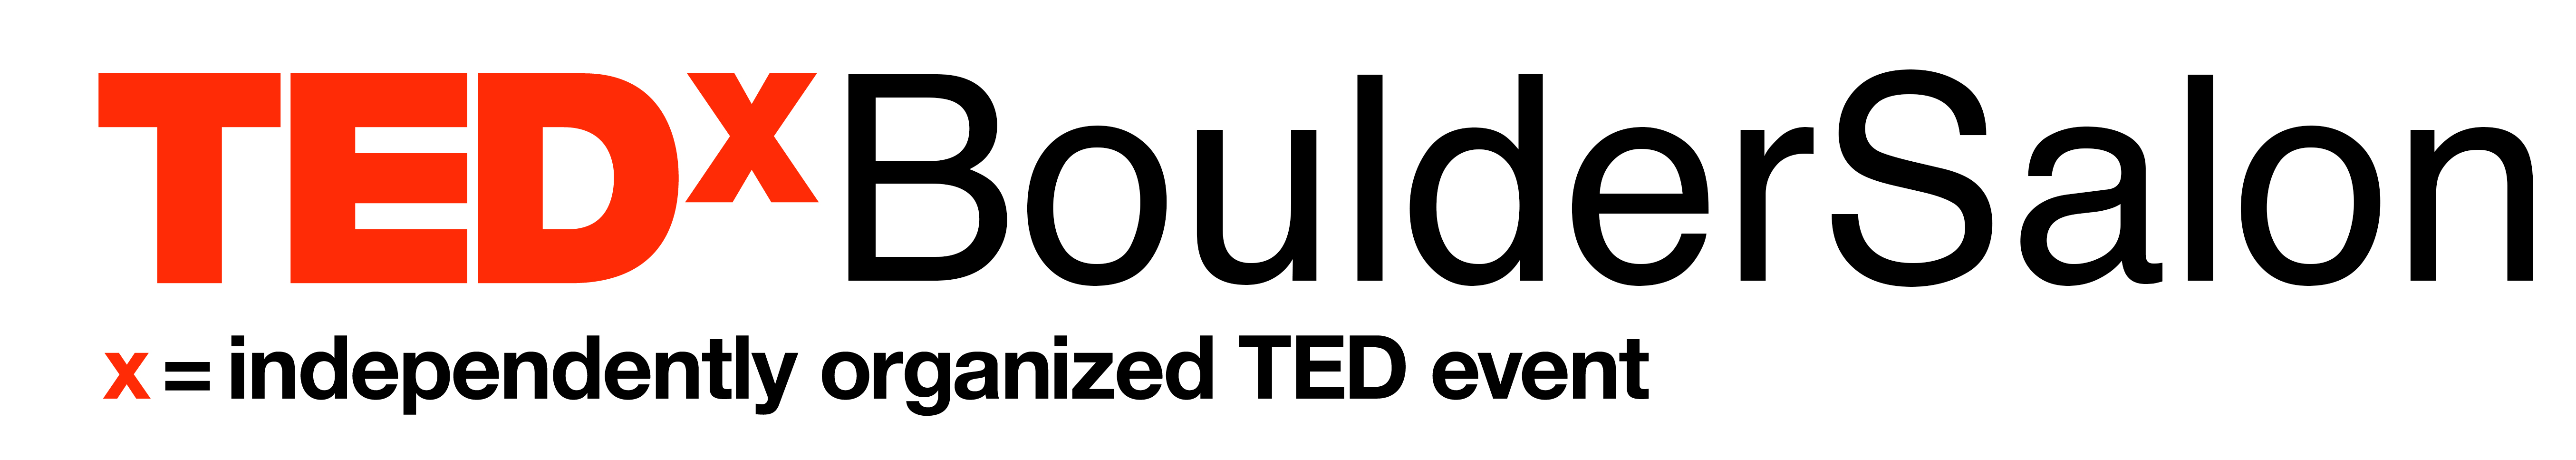 tedx boulder salon , community conversations